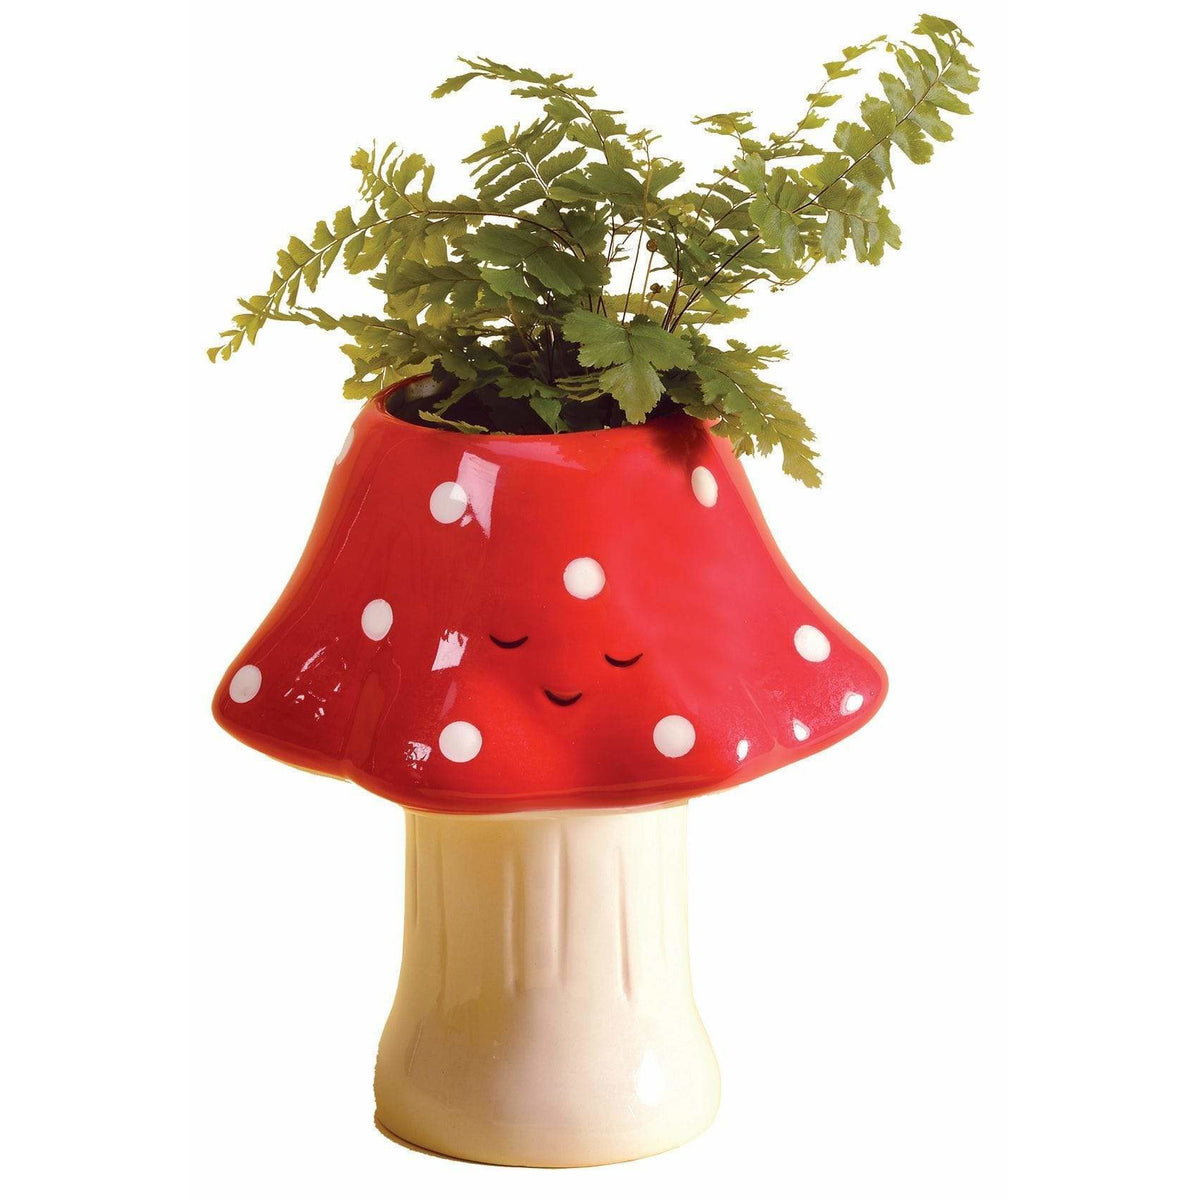 Streamline Garden Decor Mushroom Planter - Tall